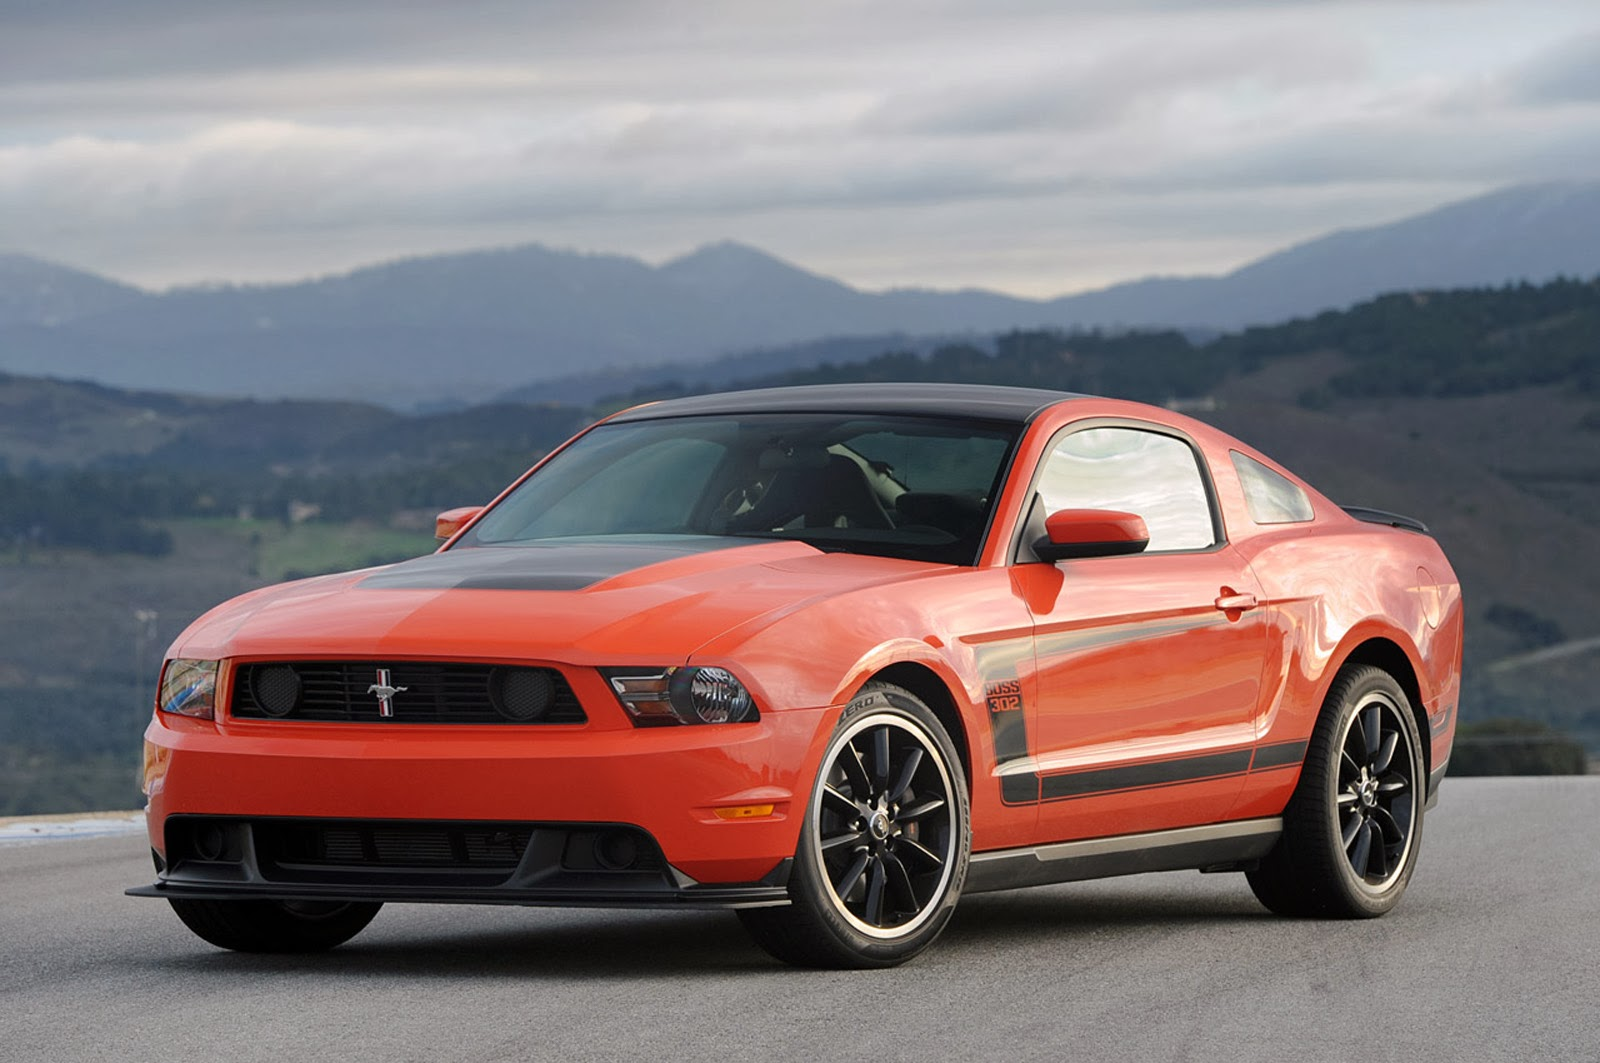 diecast hobbist 2012 ford mustang boss 302. Black Bedroom Furniture Sets. Home Design Ideas